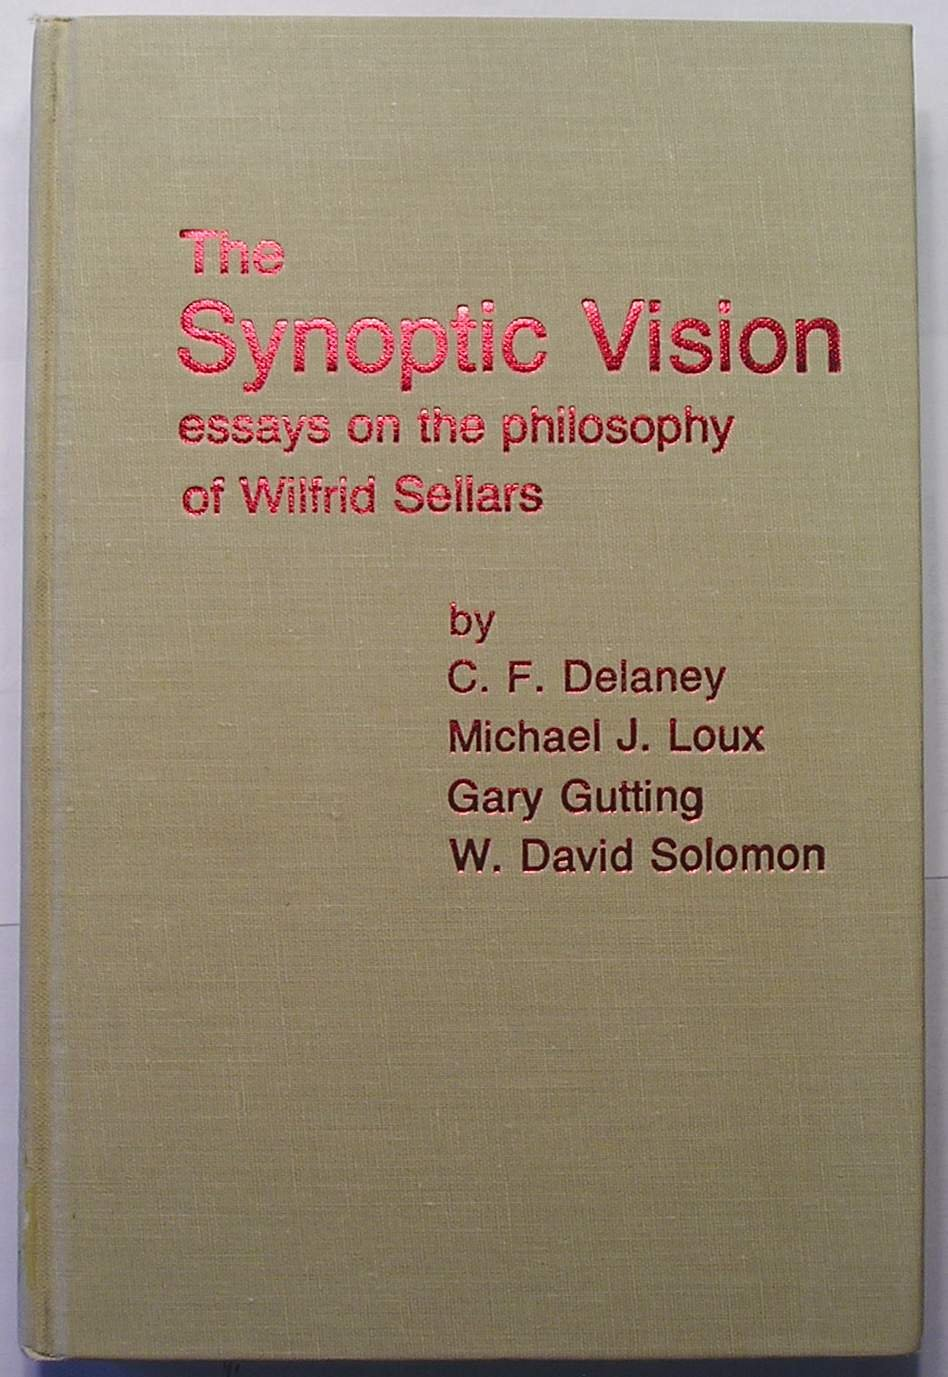 the synoptic vision essays on the philosophy of wilfrid sellars the synoptic vision essays on the philosophy of wilfrid sellars c f delaney michael j loux gary gutting w david solomon 9780268015961 com